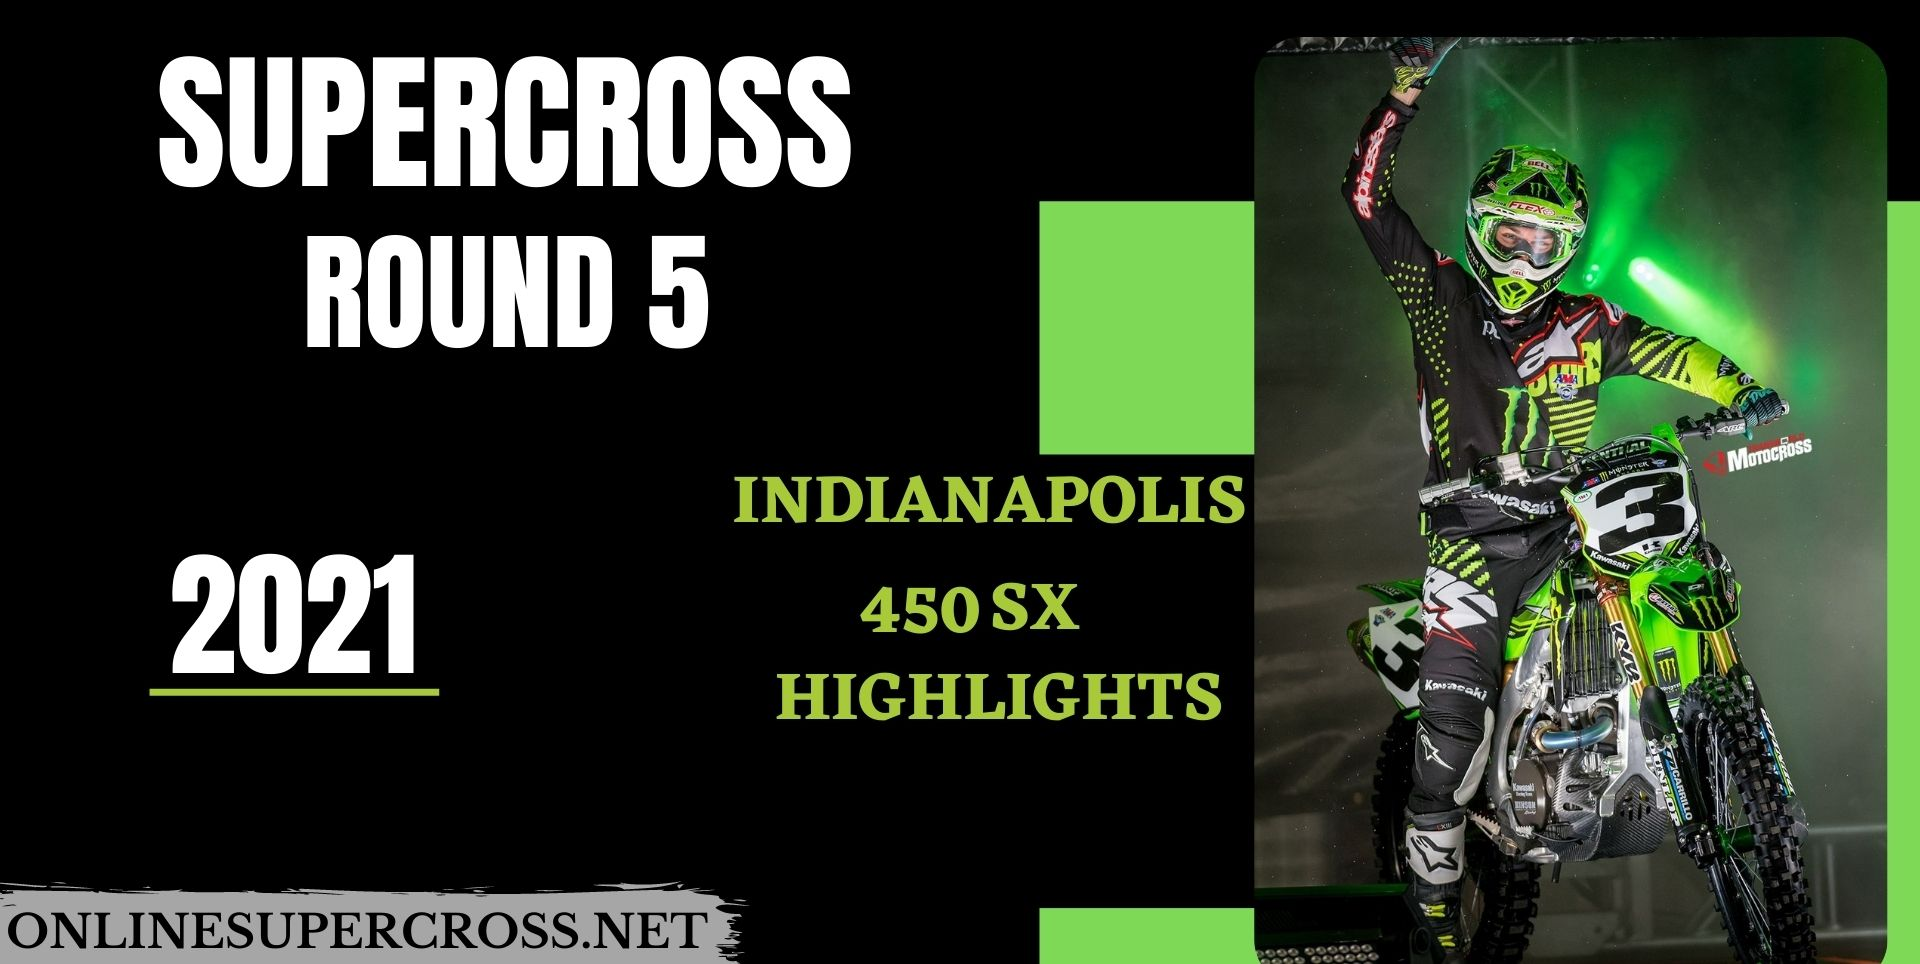 Indianapolis Round 5 Supercross 450SX Highlights 2021